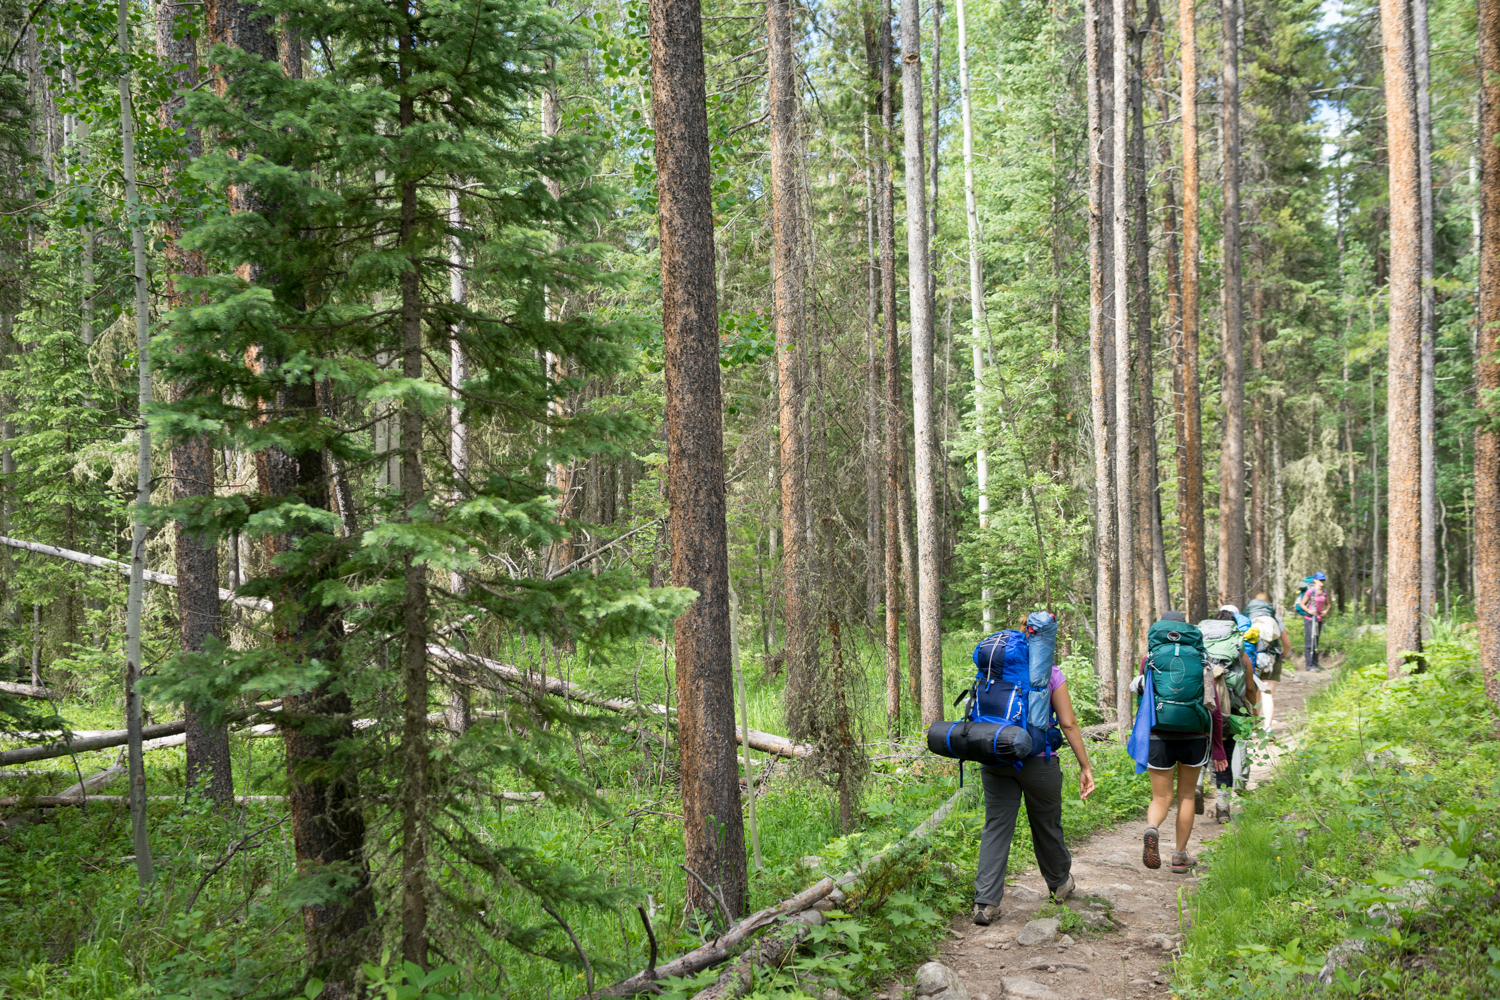 There is something so beautiful about a group of women backpacking together. It's one of my favorite sites in the wilderness.